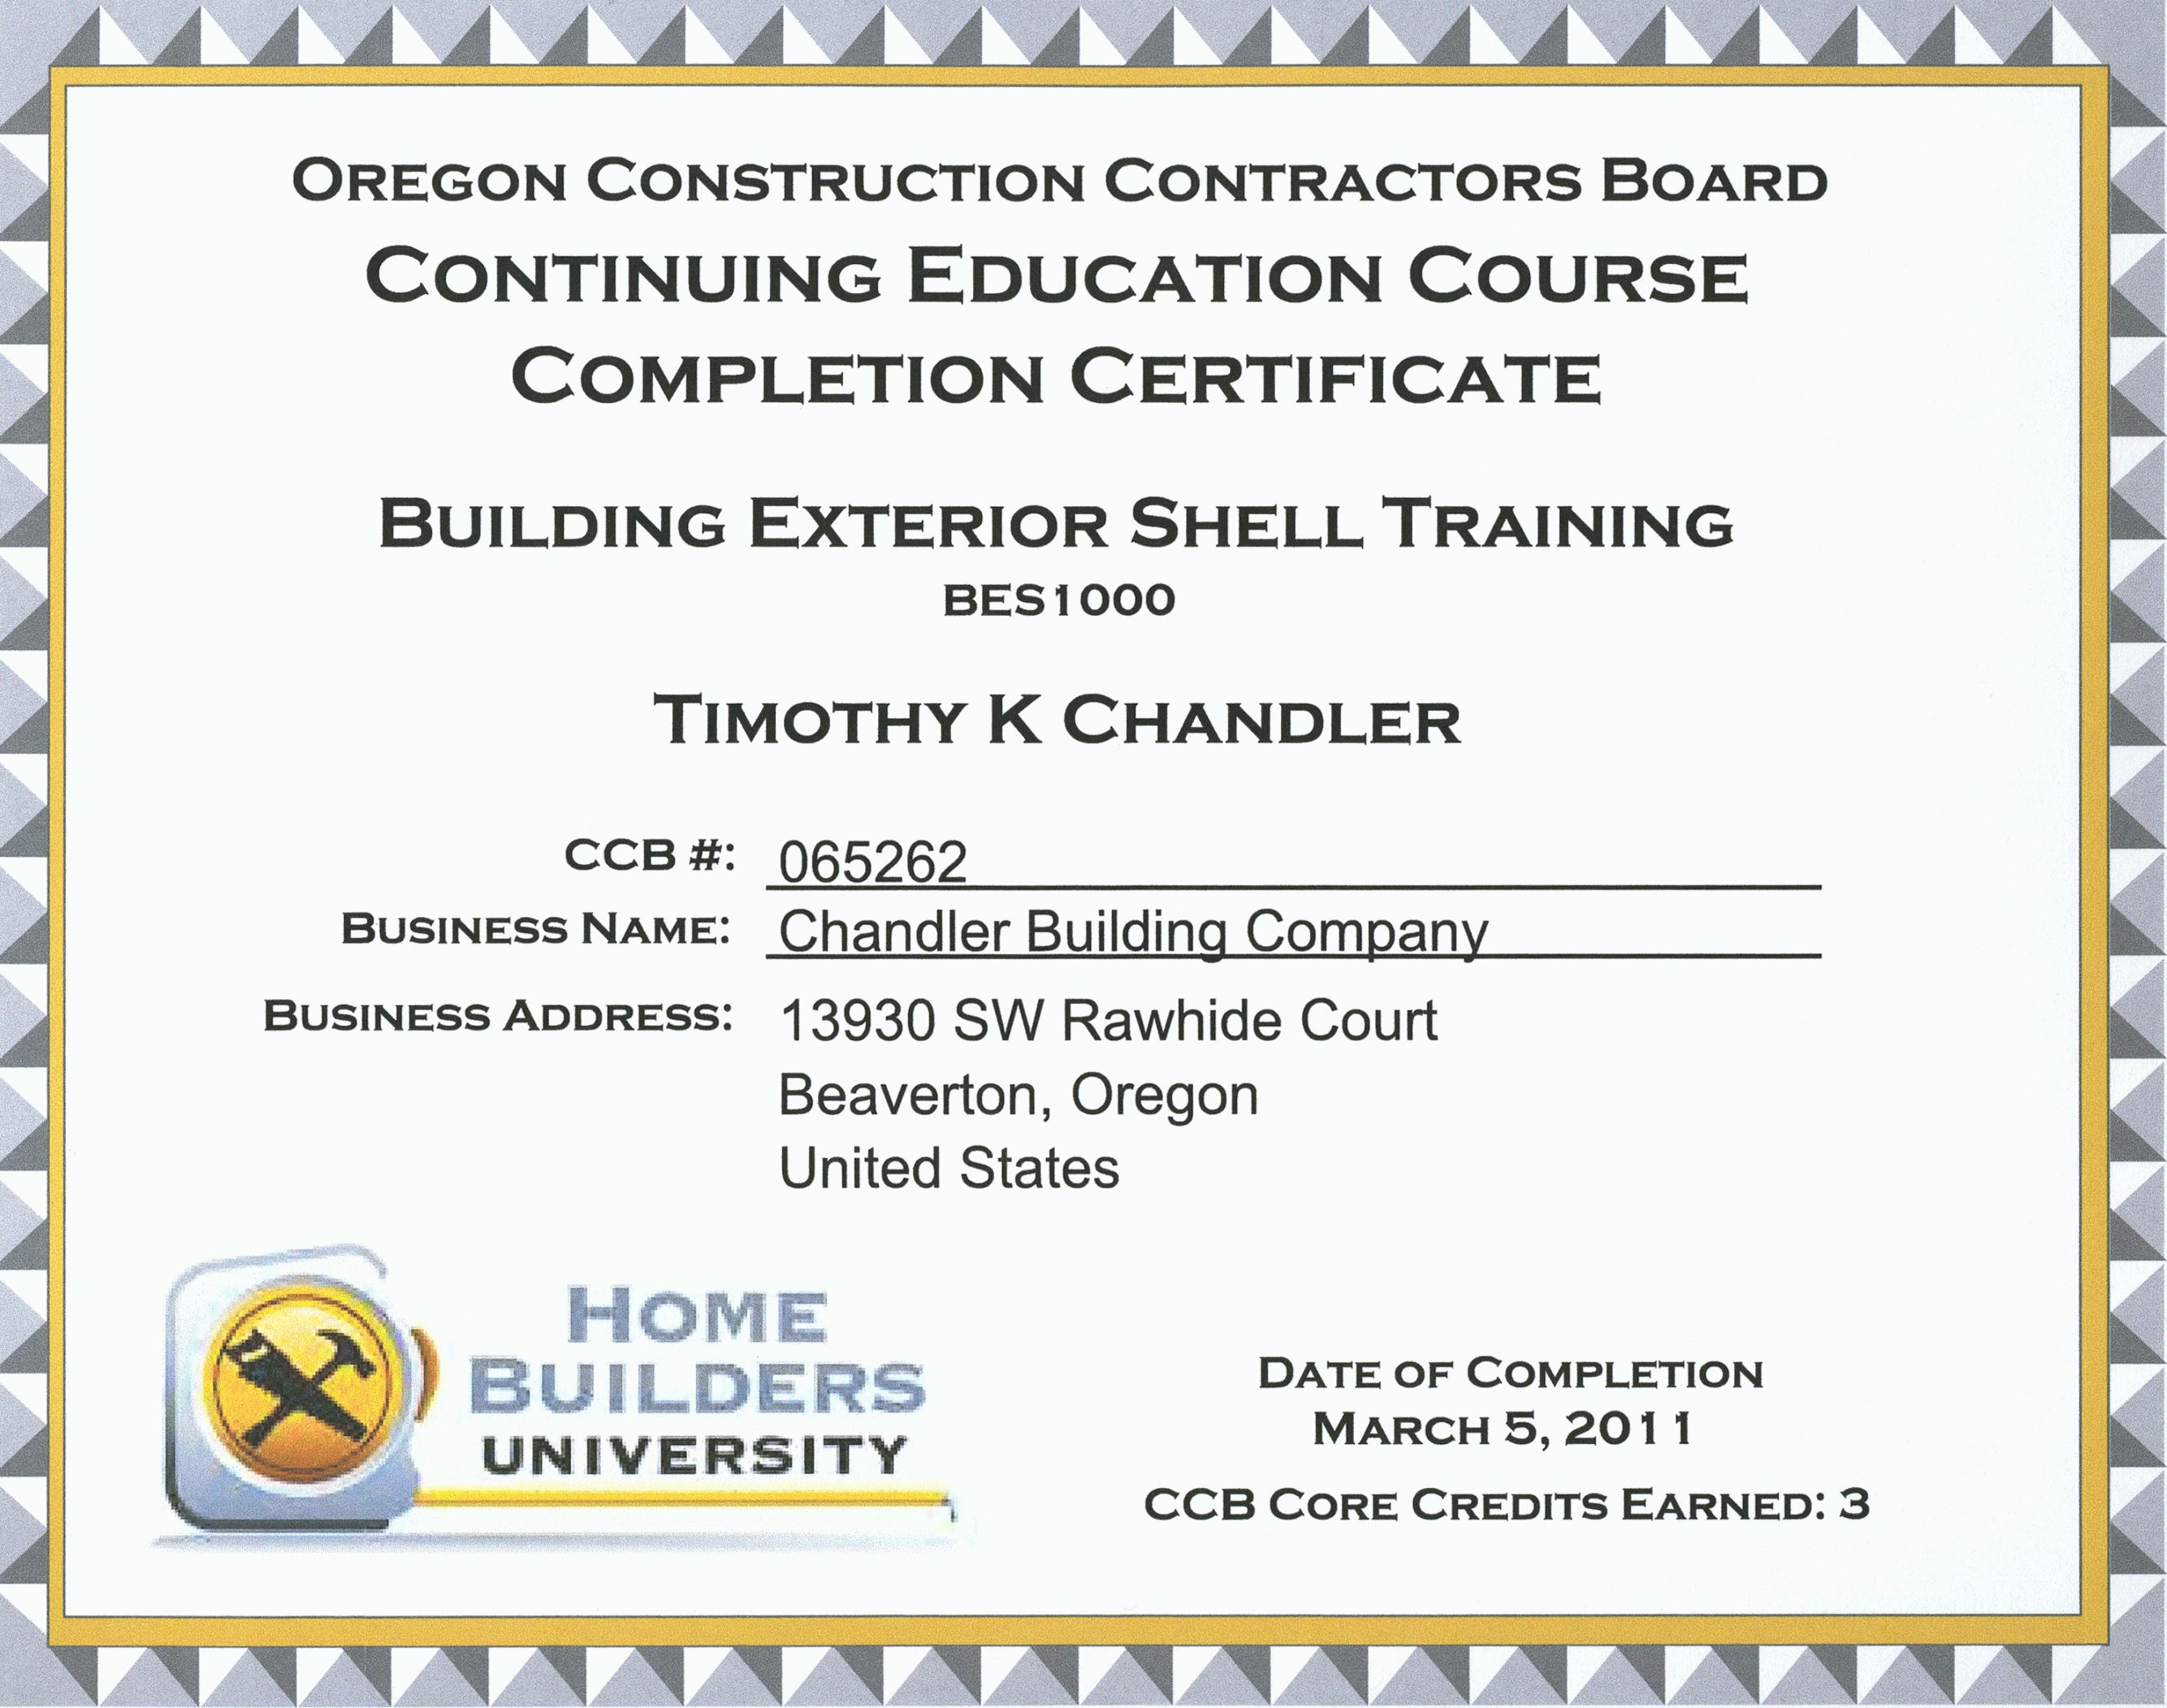 Browse Our Example Of Continuing Education Certificate Template Education Certificate Certificate Of Completion Template Continuing Education Continuing education credit certificate template